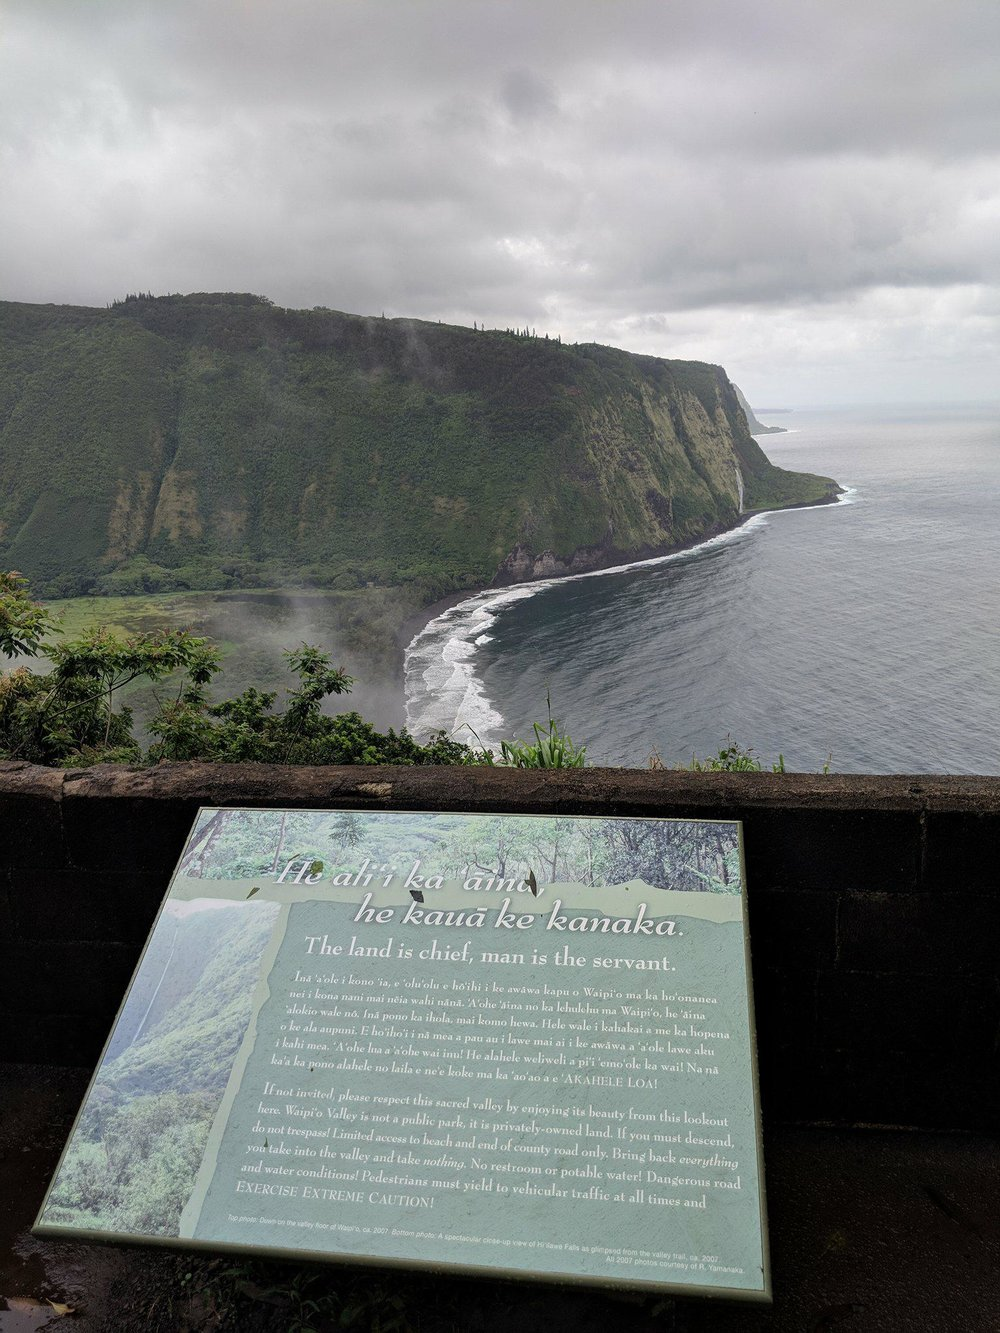 "Image Description: Waipi'o Valley with Placard reading, in part: ""If not invited, please respect this sacred valley by enjoying its beauty from this lookout here. Waipi'o Valley is not a public park, it is privately-owned land. If you must descend, do not trespass!"""